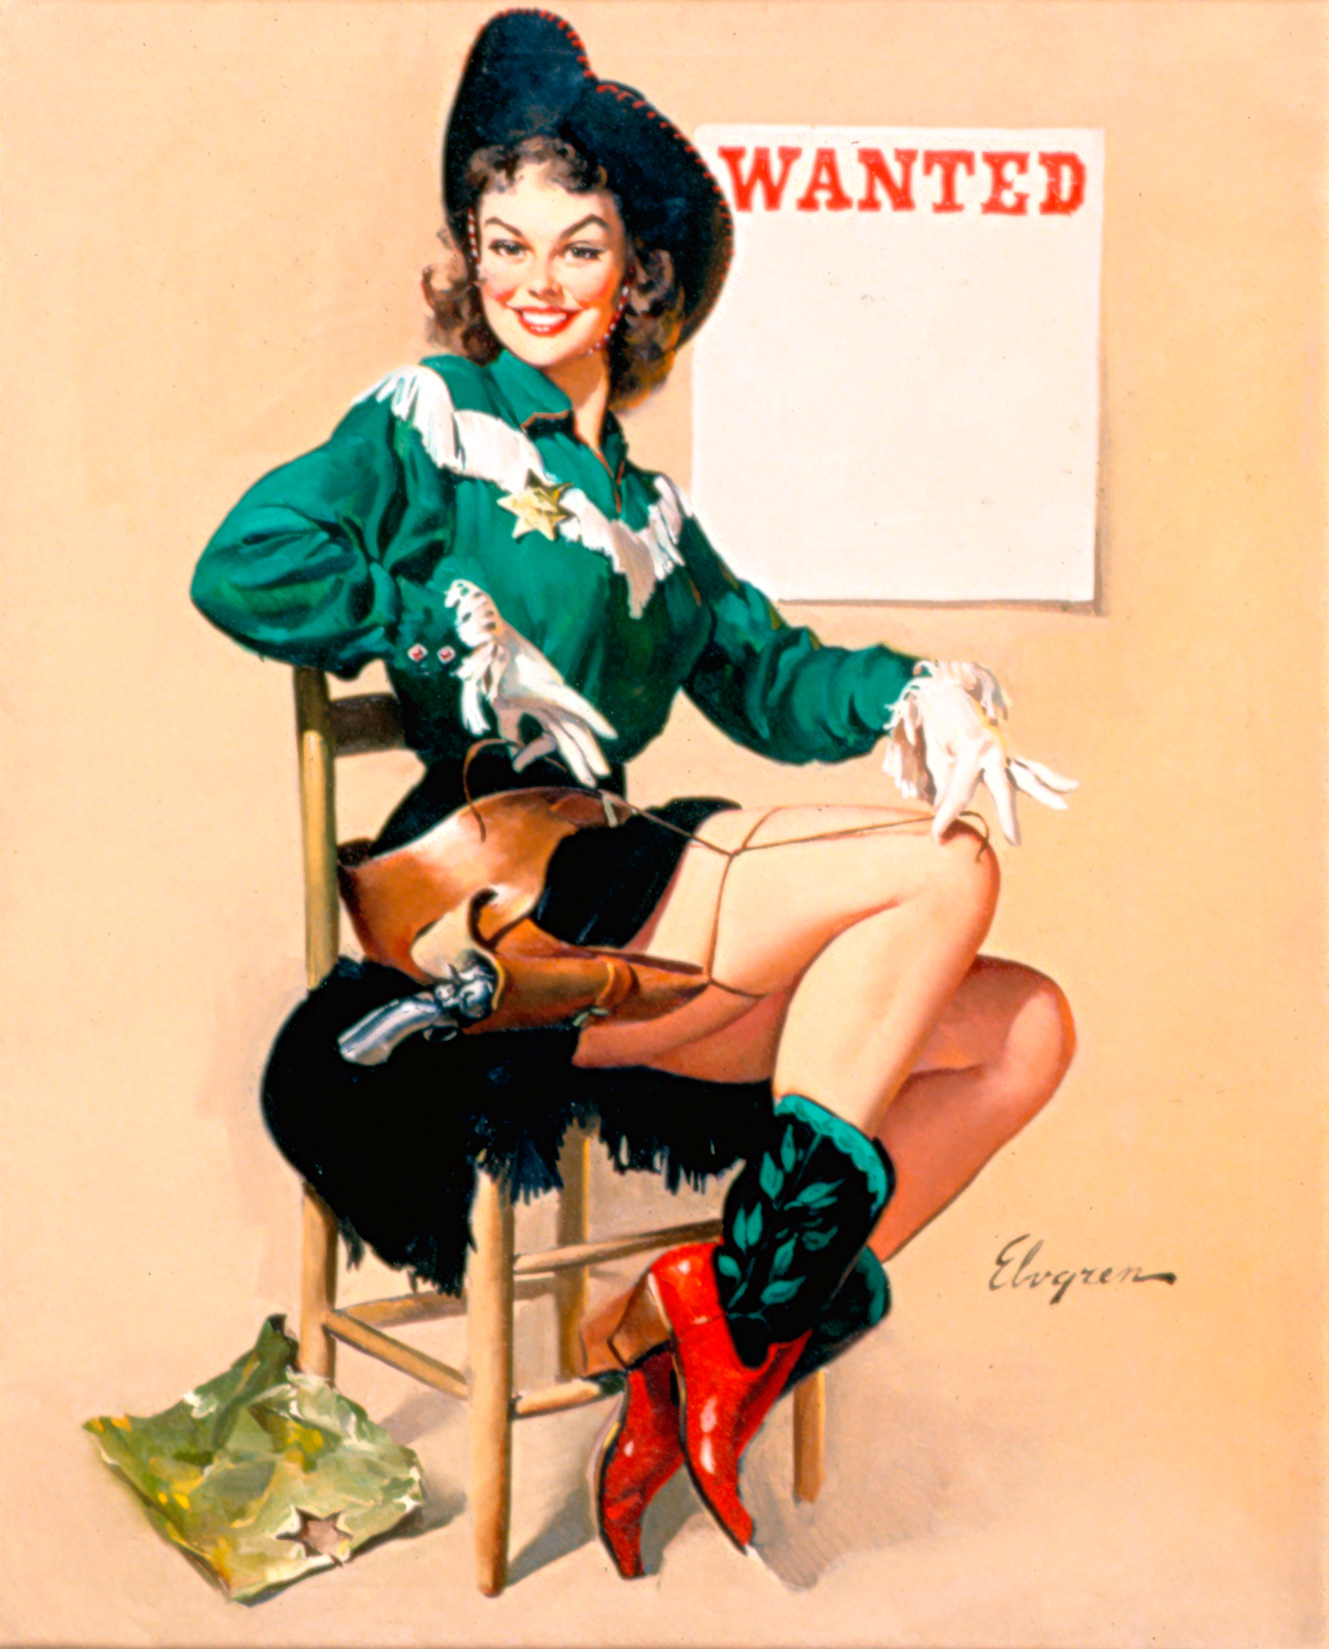 pretty pinup pictures on pinterest gil elvgren pin up and pin up girls. Black Bedroom Furniture Sets. Home Design Ideas